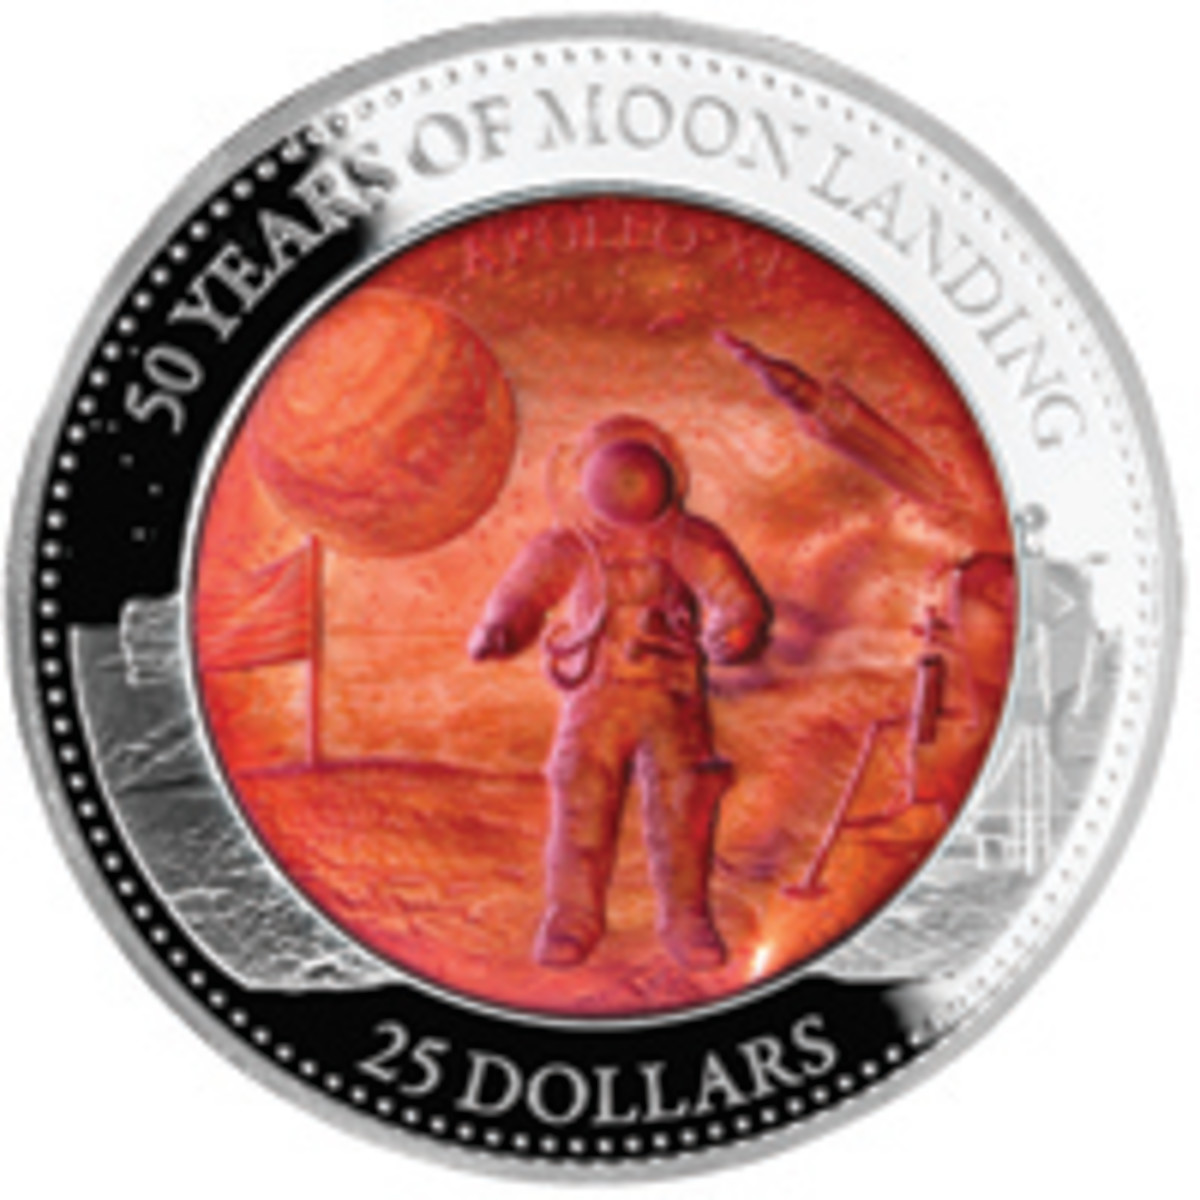 Reverse of Solomon Islands $25 proof commemorating the 50th anniversary of the first Moon landing. (Image courtesy Downies)